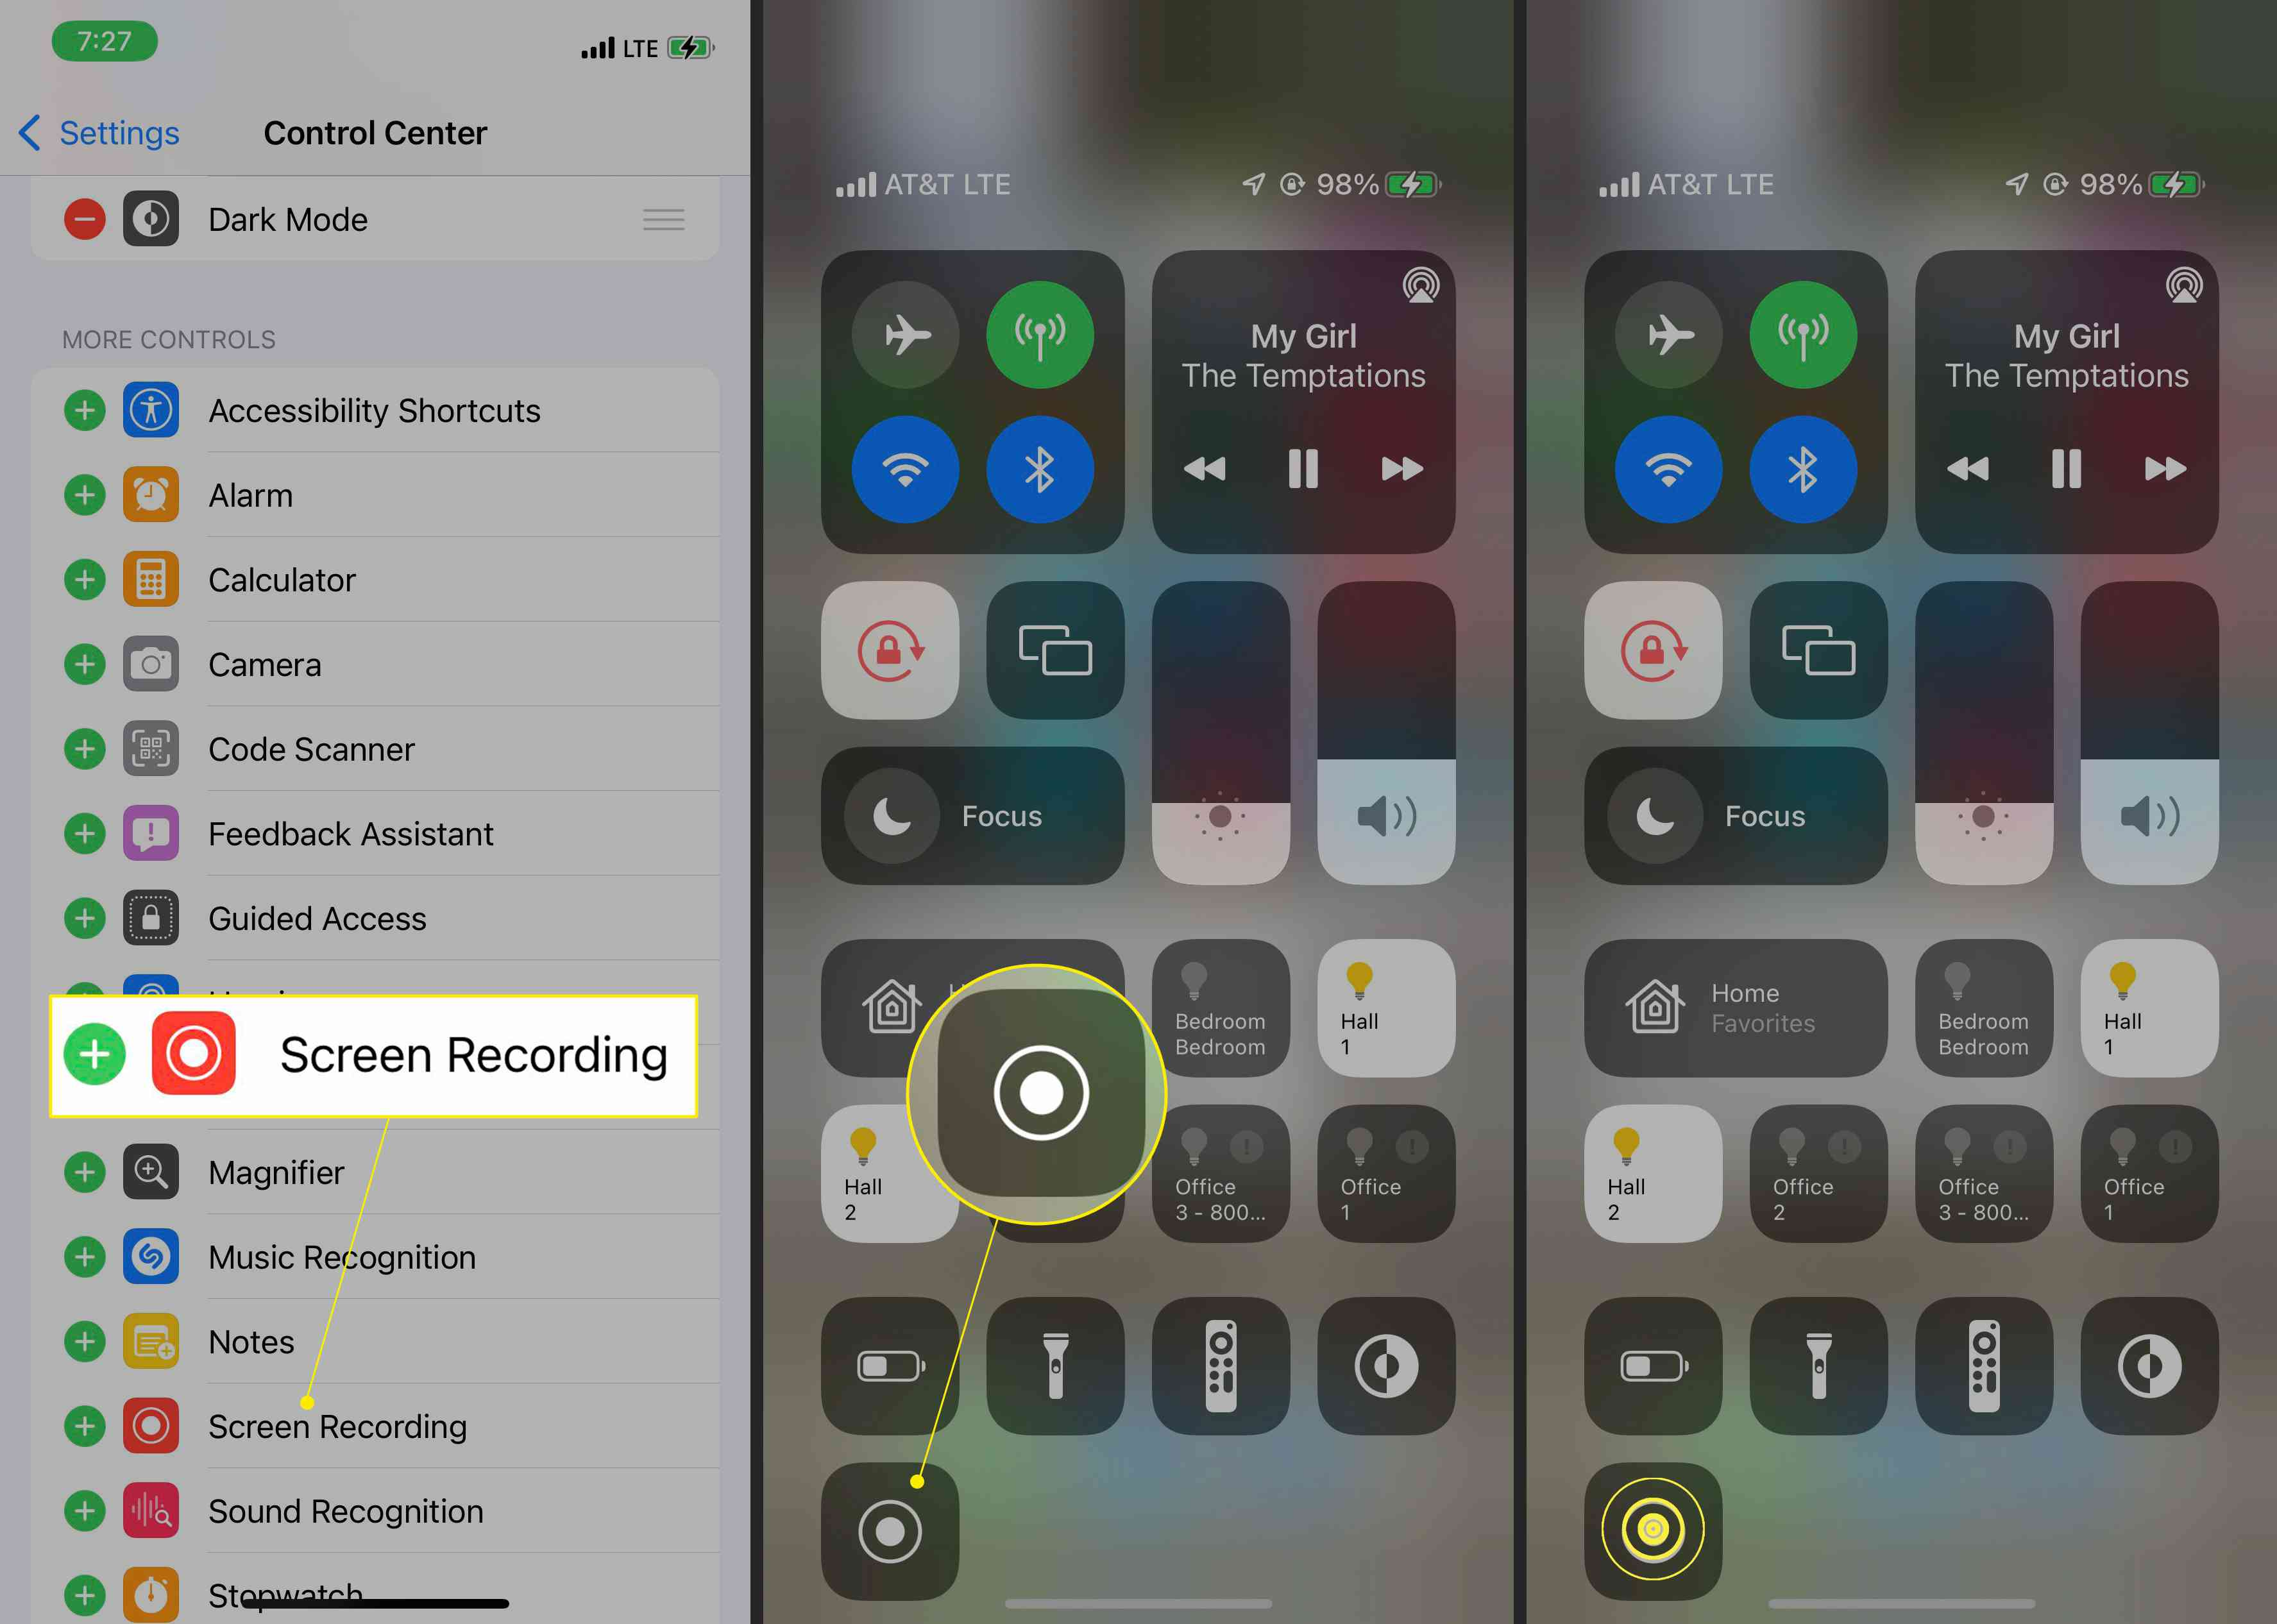 iPhone settings with Screen recording highlighted, and Control Panel with Play button highlighted and a tap-and-hold on the Play button